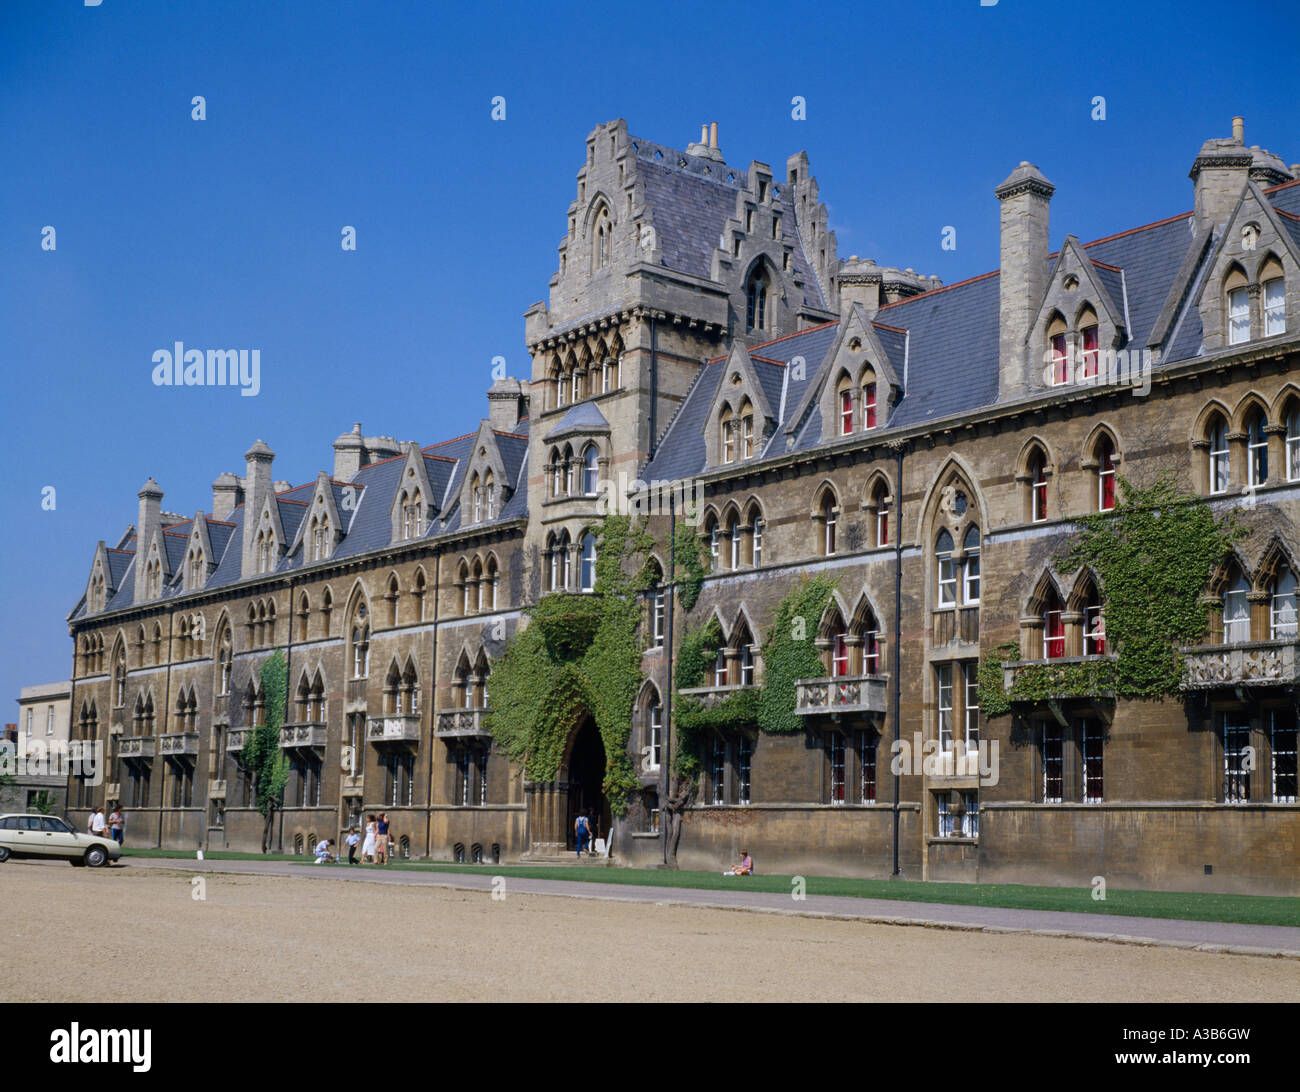 ENGLAND Oxfordshire Oxford University Architecture Christ Church College  With View Of Exterior